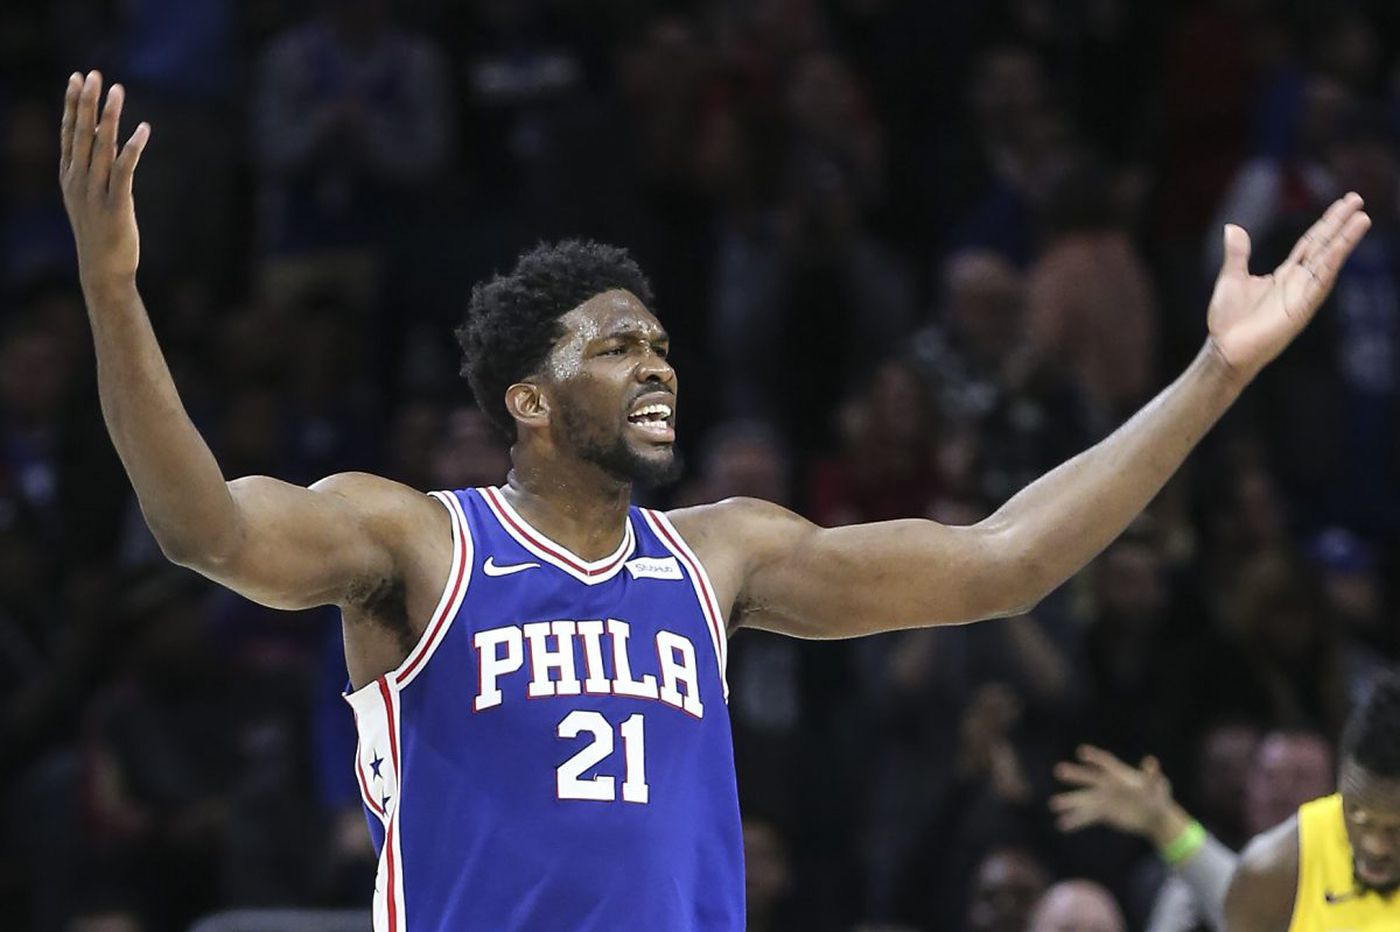 Sixers' Joel Embiid, JJ Redick listed as questionable versus New York Knicks